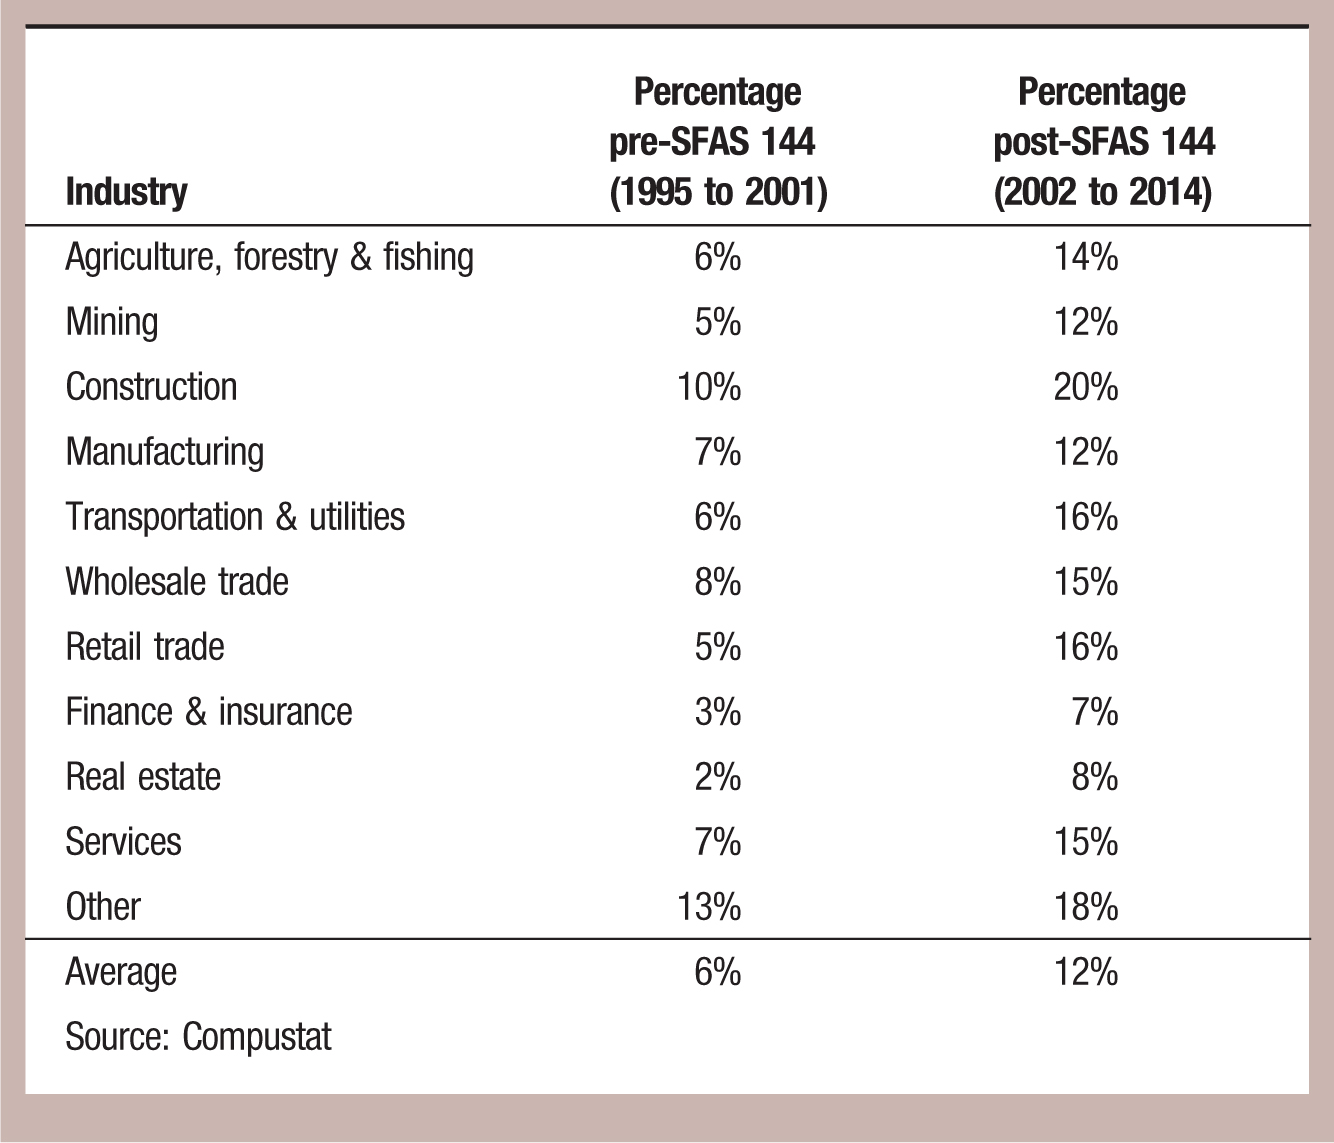 Industry; Percentage pre-SFAS 144 (1995 to 2001); Percentage post-SFAS 144 (2002 to 2014) Agriculture, forestry & fishing 6% 14% Mining; 5%; 12% Construction; 10%; 20% Manufacturing; 7%; 12% Transportation & utilities; 6%; 16% Wholesale trade; 8%; 15% Retail trade; 5%; 16% Finance & insurance; 3%; 7% Real estate; 2%; 8% Services; 7%; 15% Other; 13%; 18% Average; 6%; 12% Source: Compustat